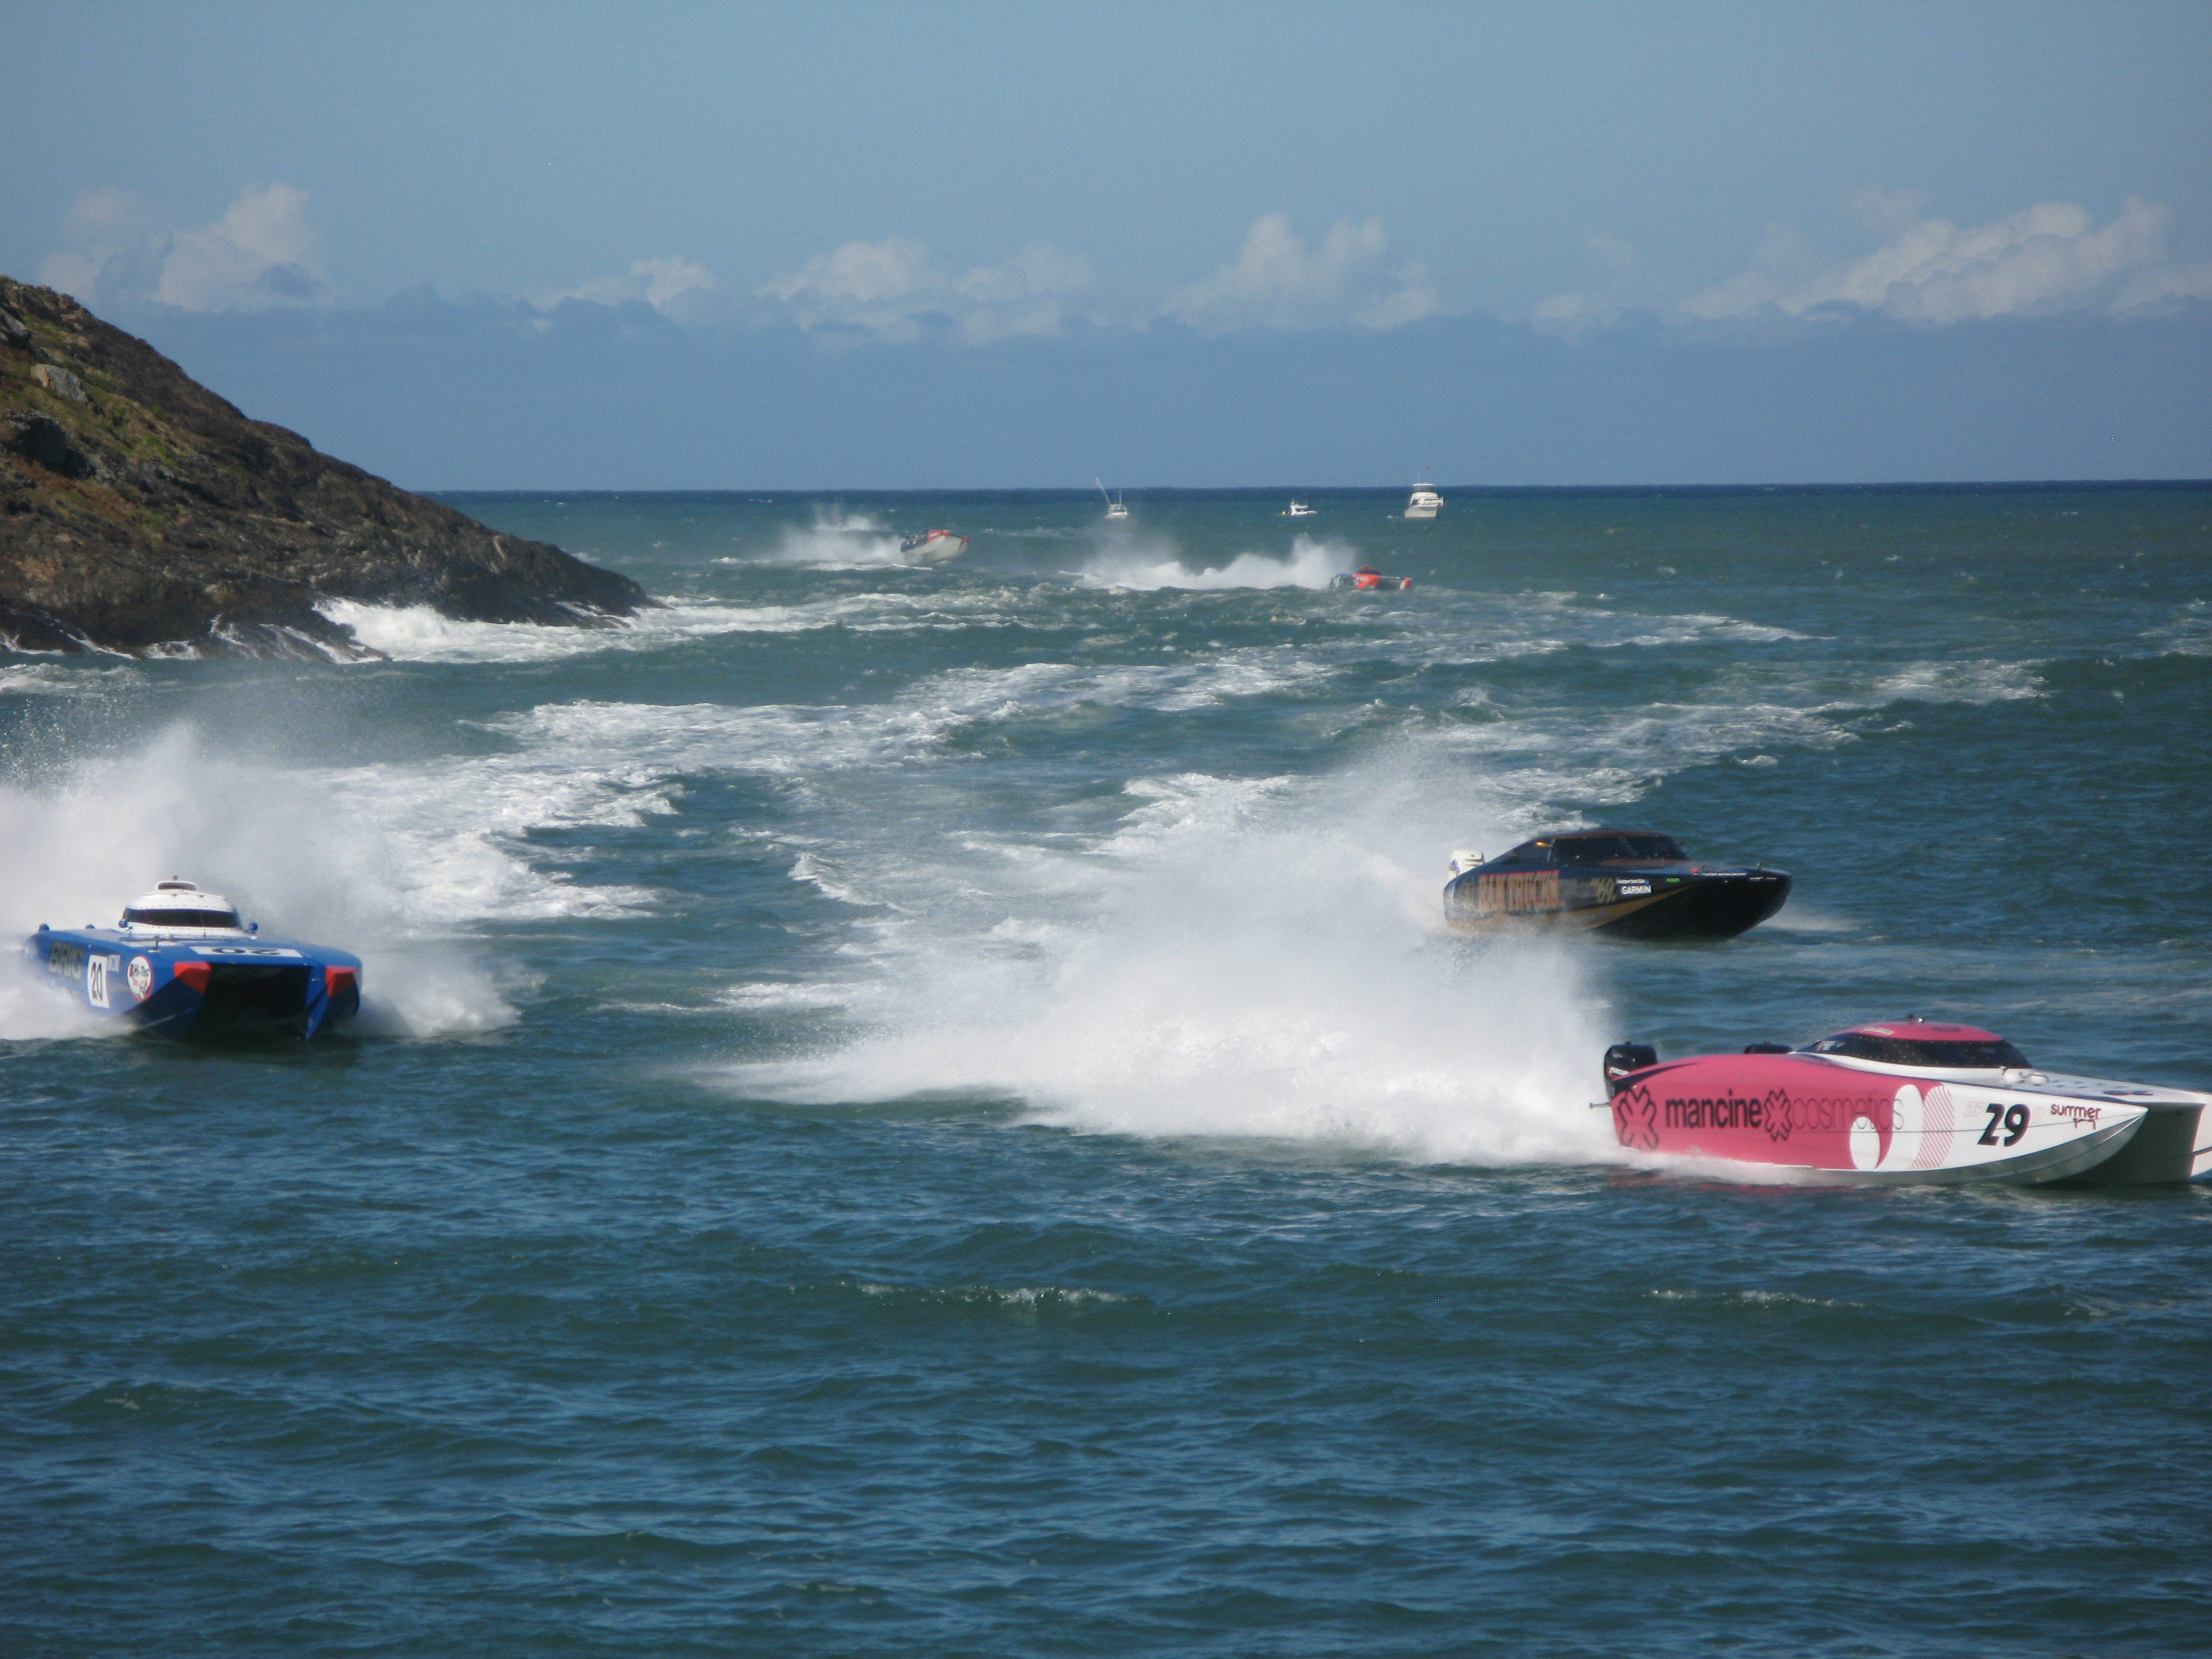 Jet boats racing offshore in a power boat race speeding through the water in a cloud of spray